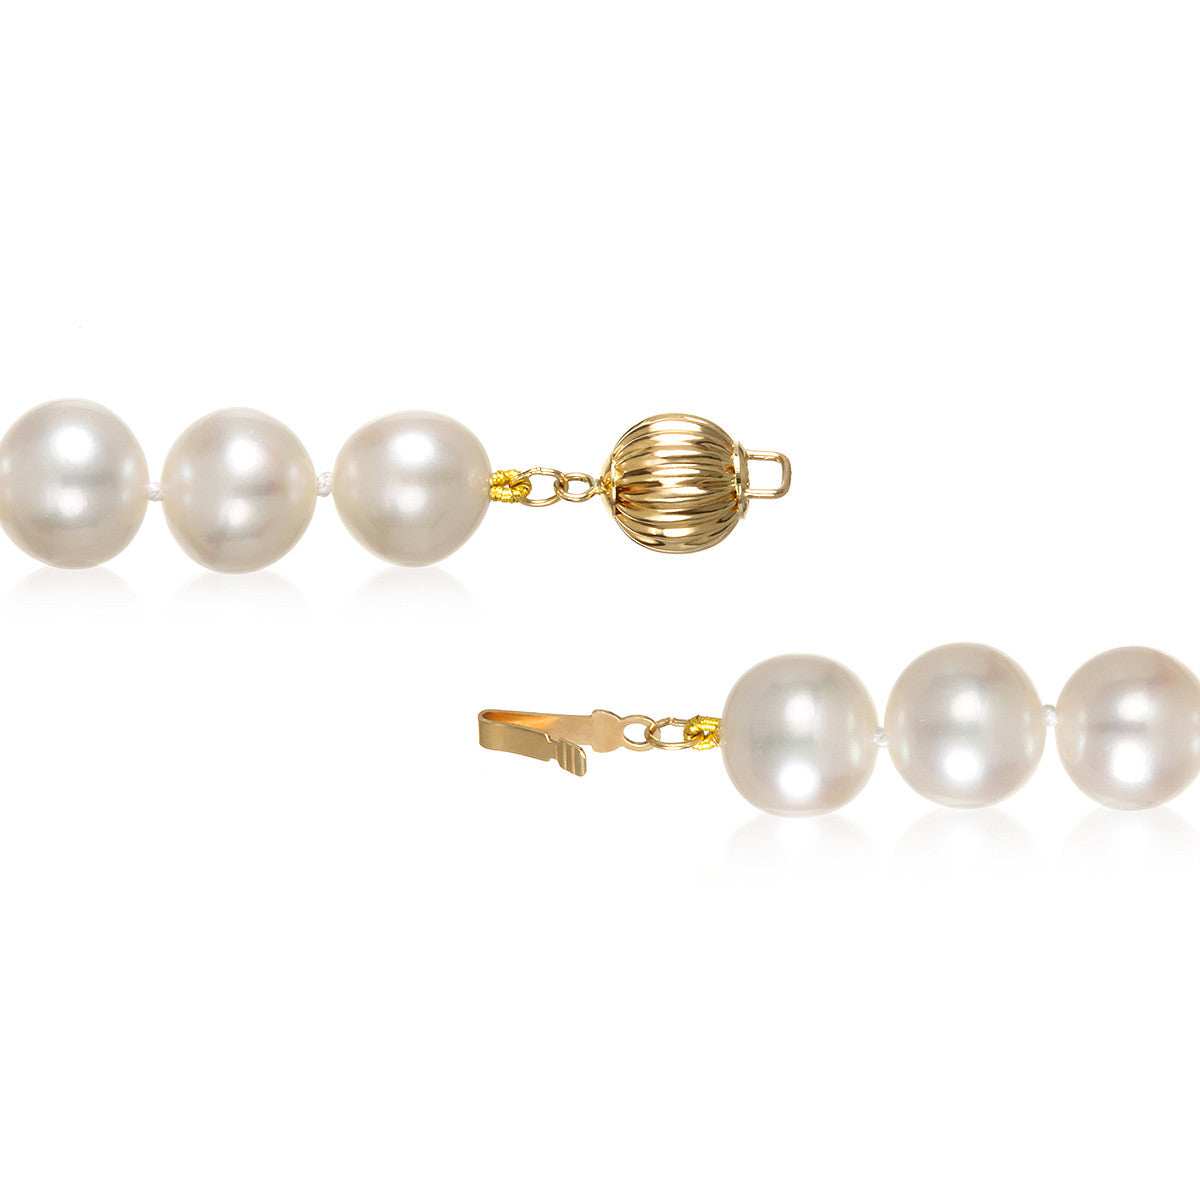 "8.5 - 9.5mm Cultured White Freshwater Pearl Necklace, 18"", AAA High Luster, 14K Yellow Gold - Isaac Westman - 3"